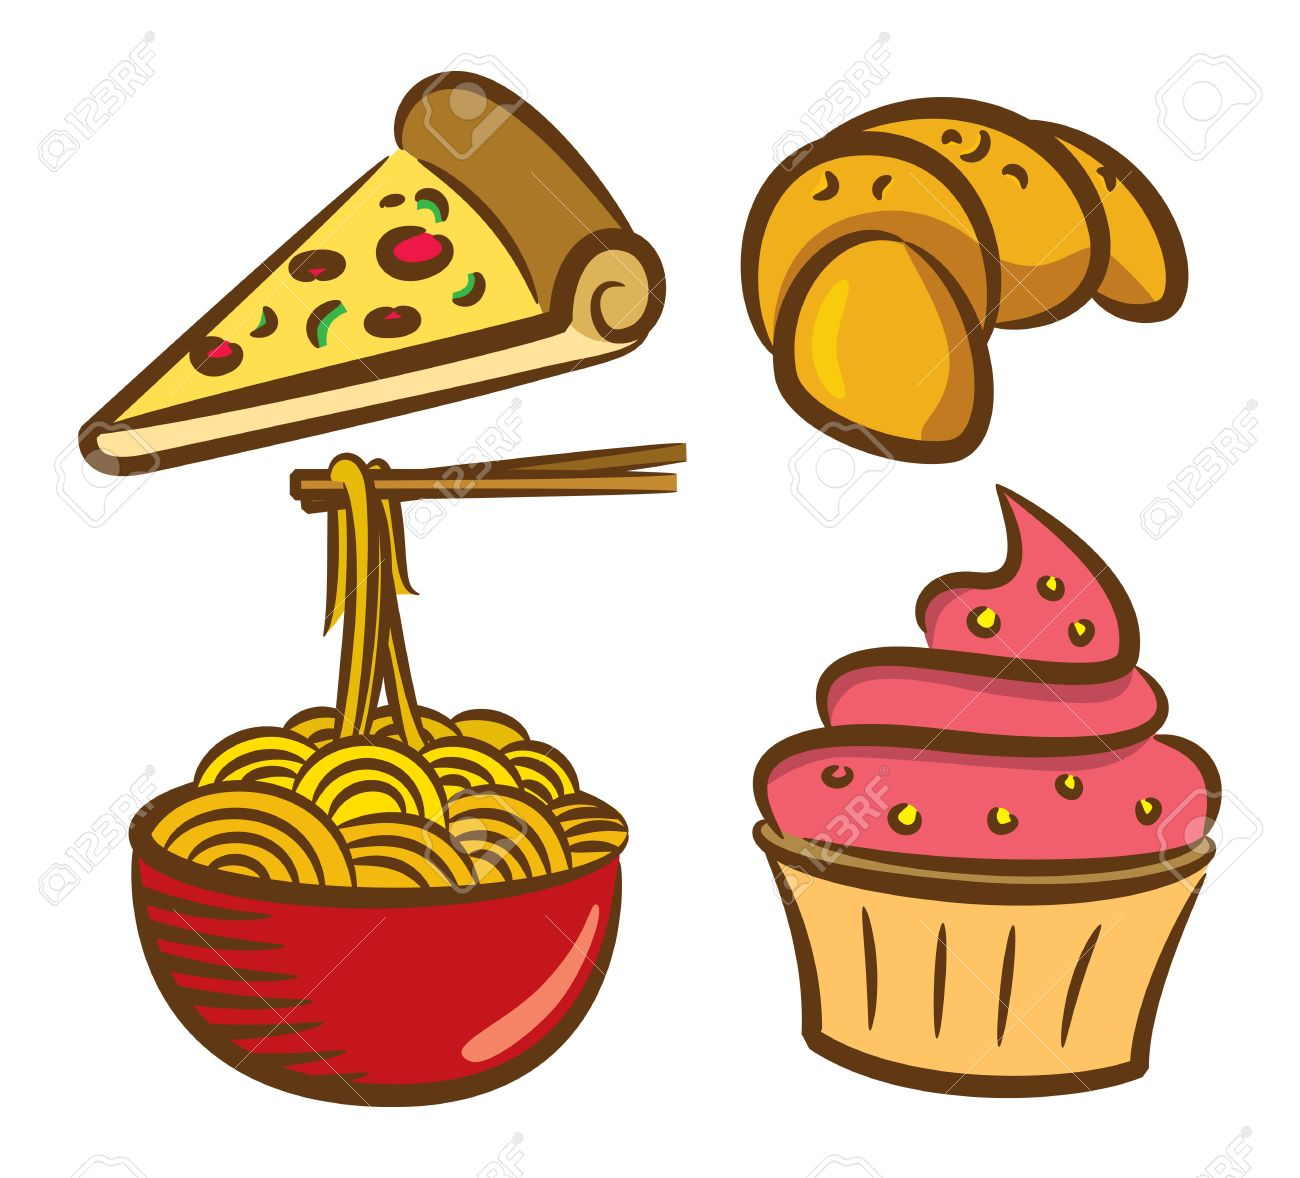 Set Of Food Icon In Doodle Style Royalty Free Cliparts, Vectors.